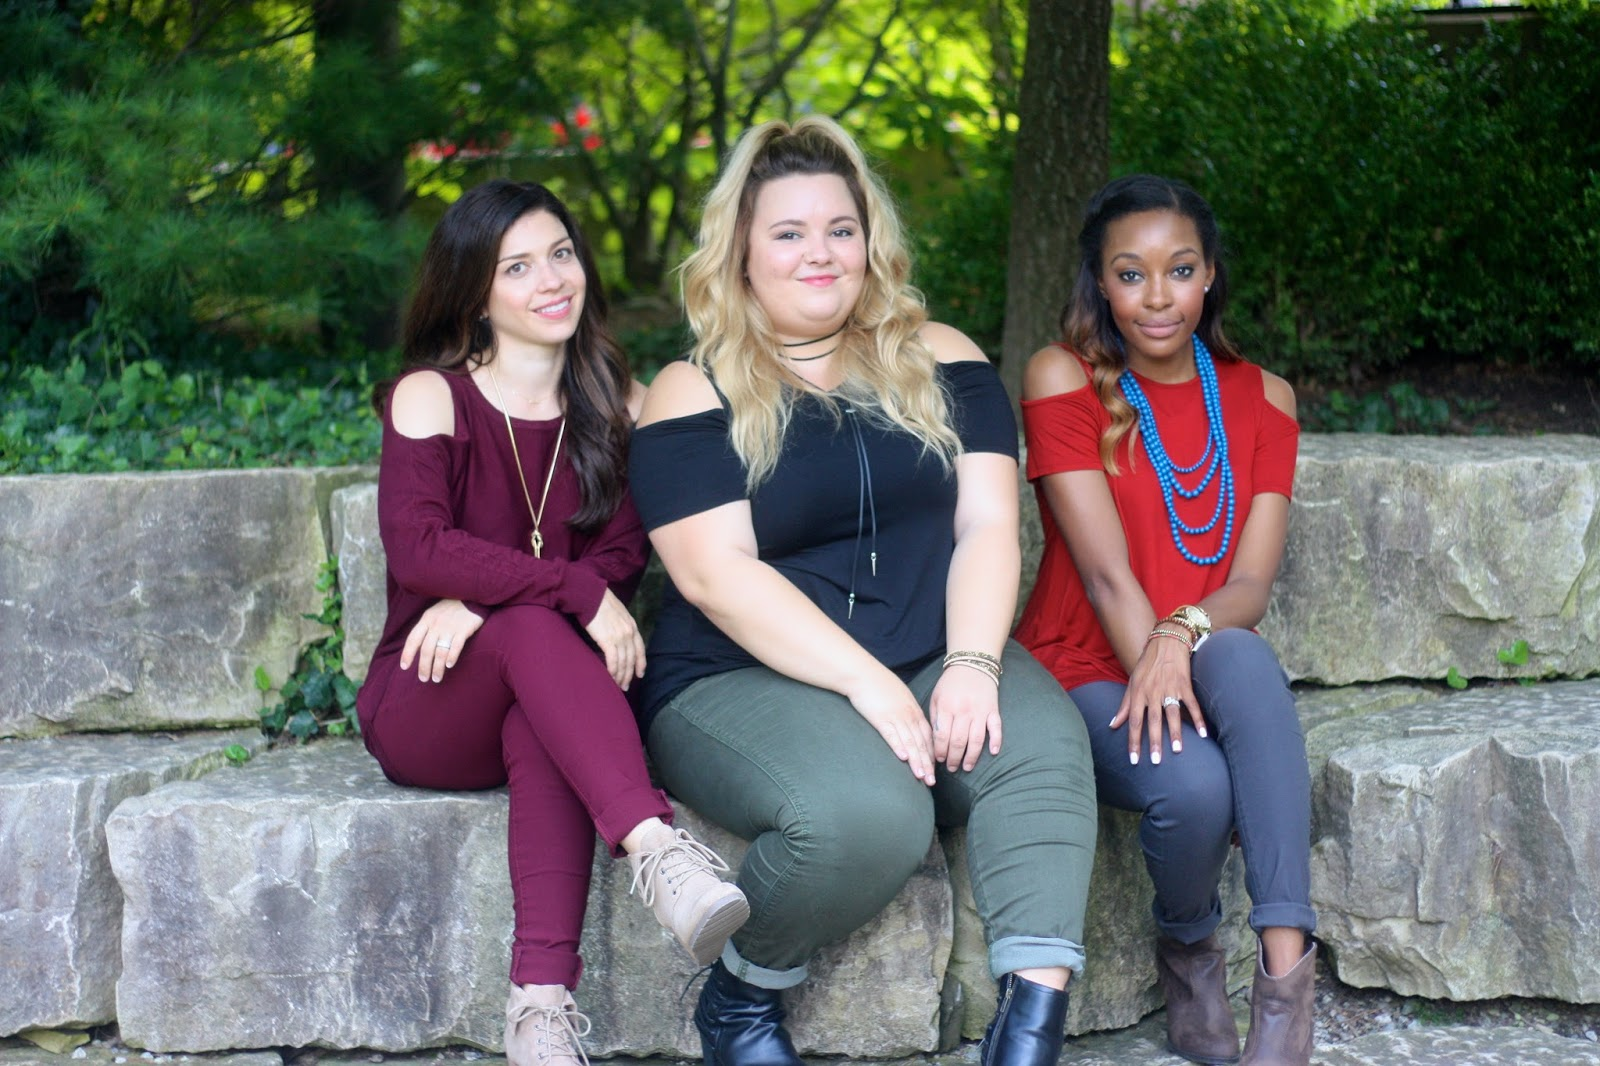 meijer, meijer style, meijer plus size clothing, natalie craig, nina rand, candace read, midwest blogger, chicago fashion blogger, fatshion